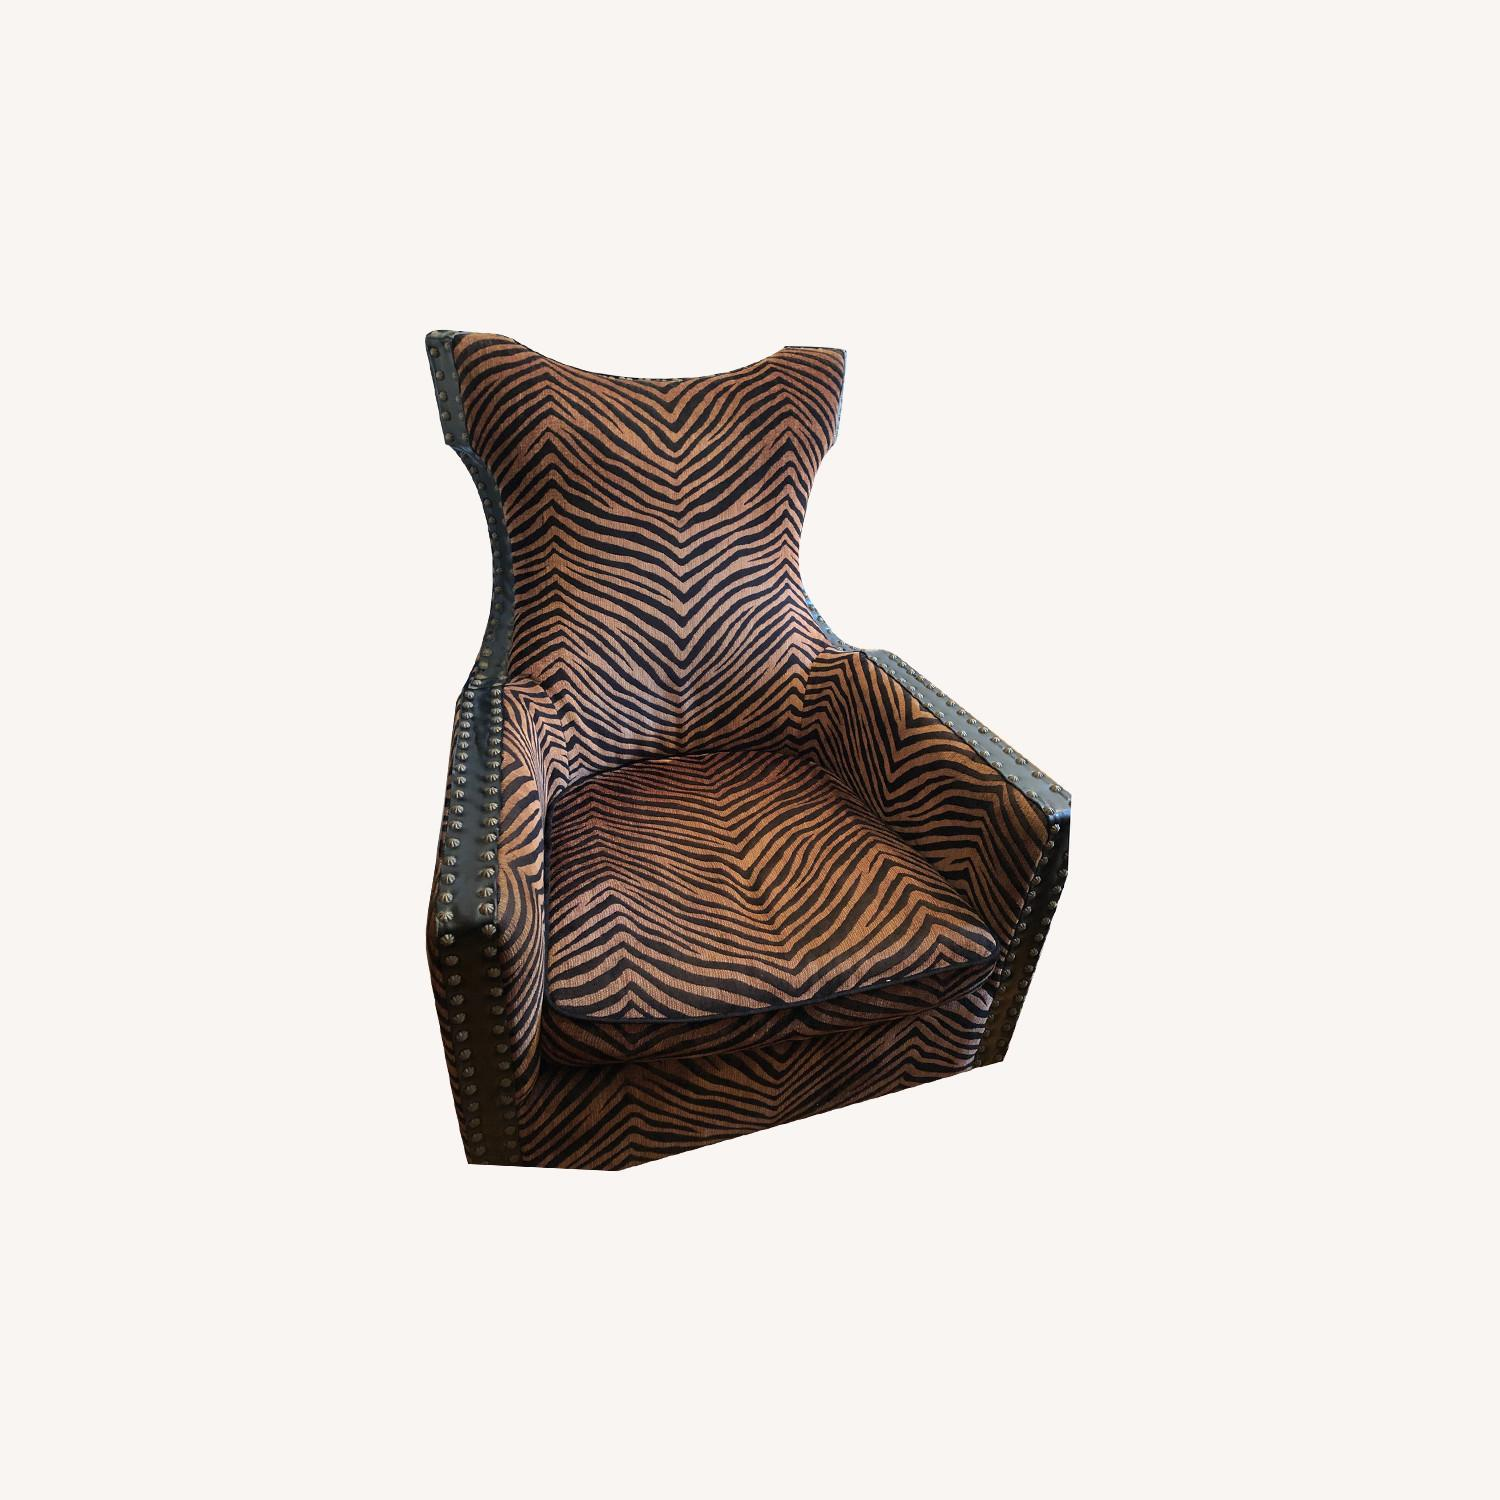 Uttermost Zebra Brow and Black Chair - image-0